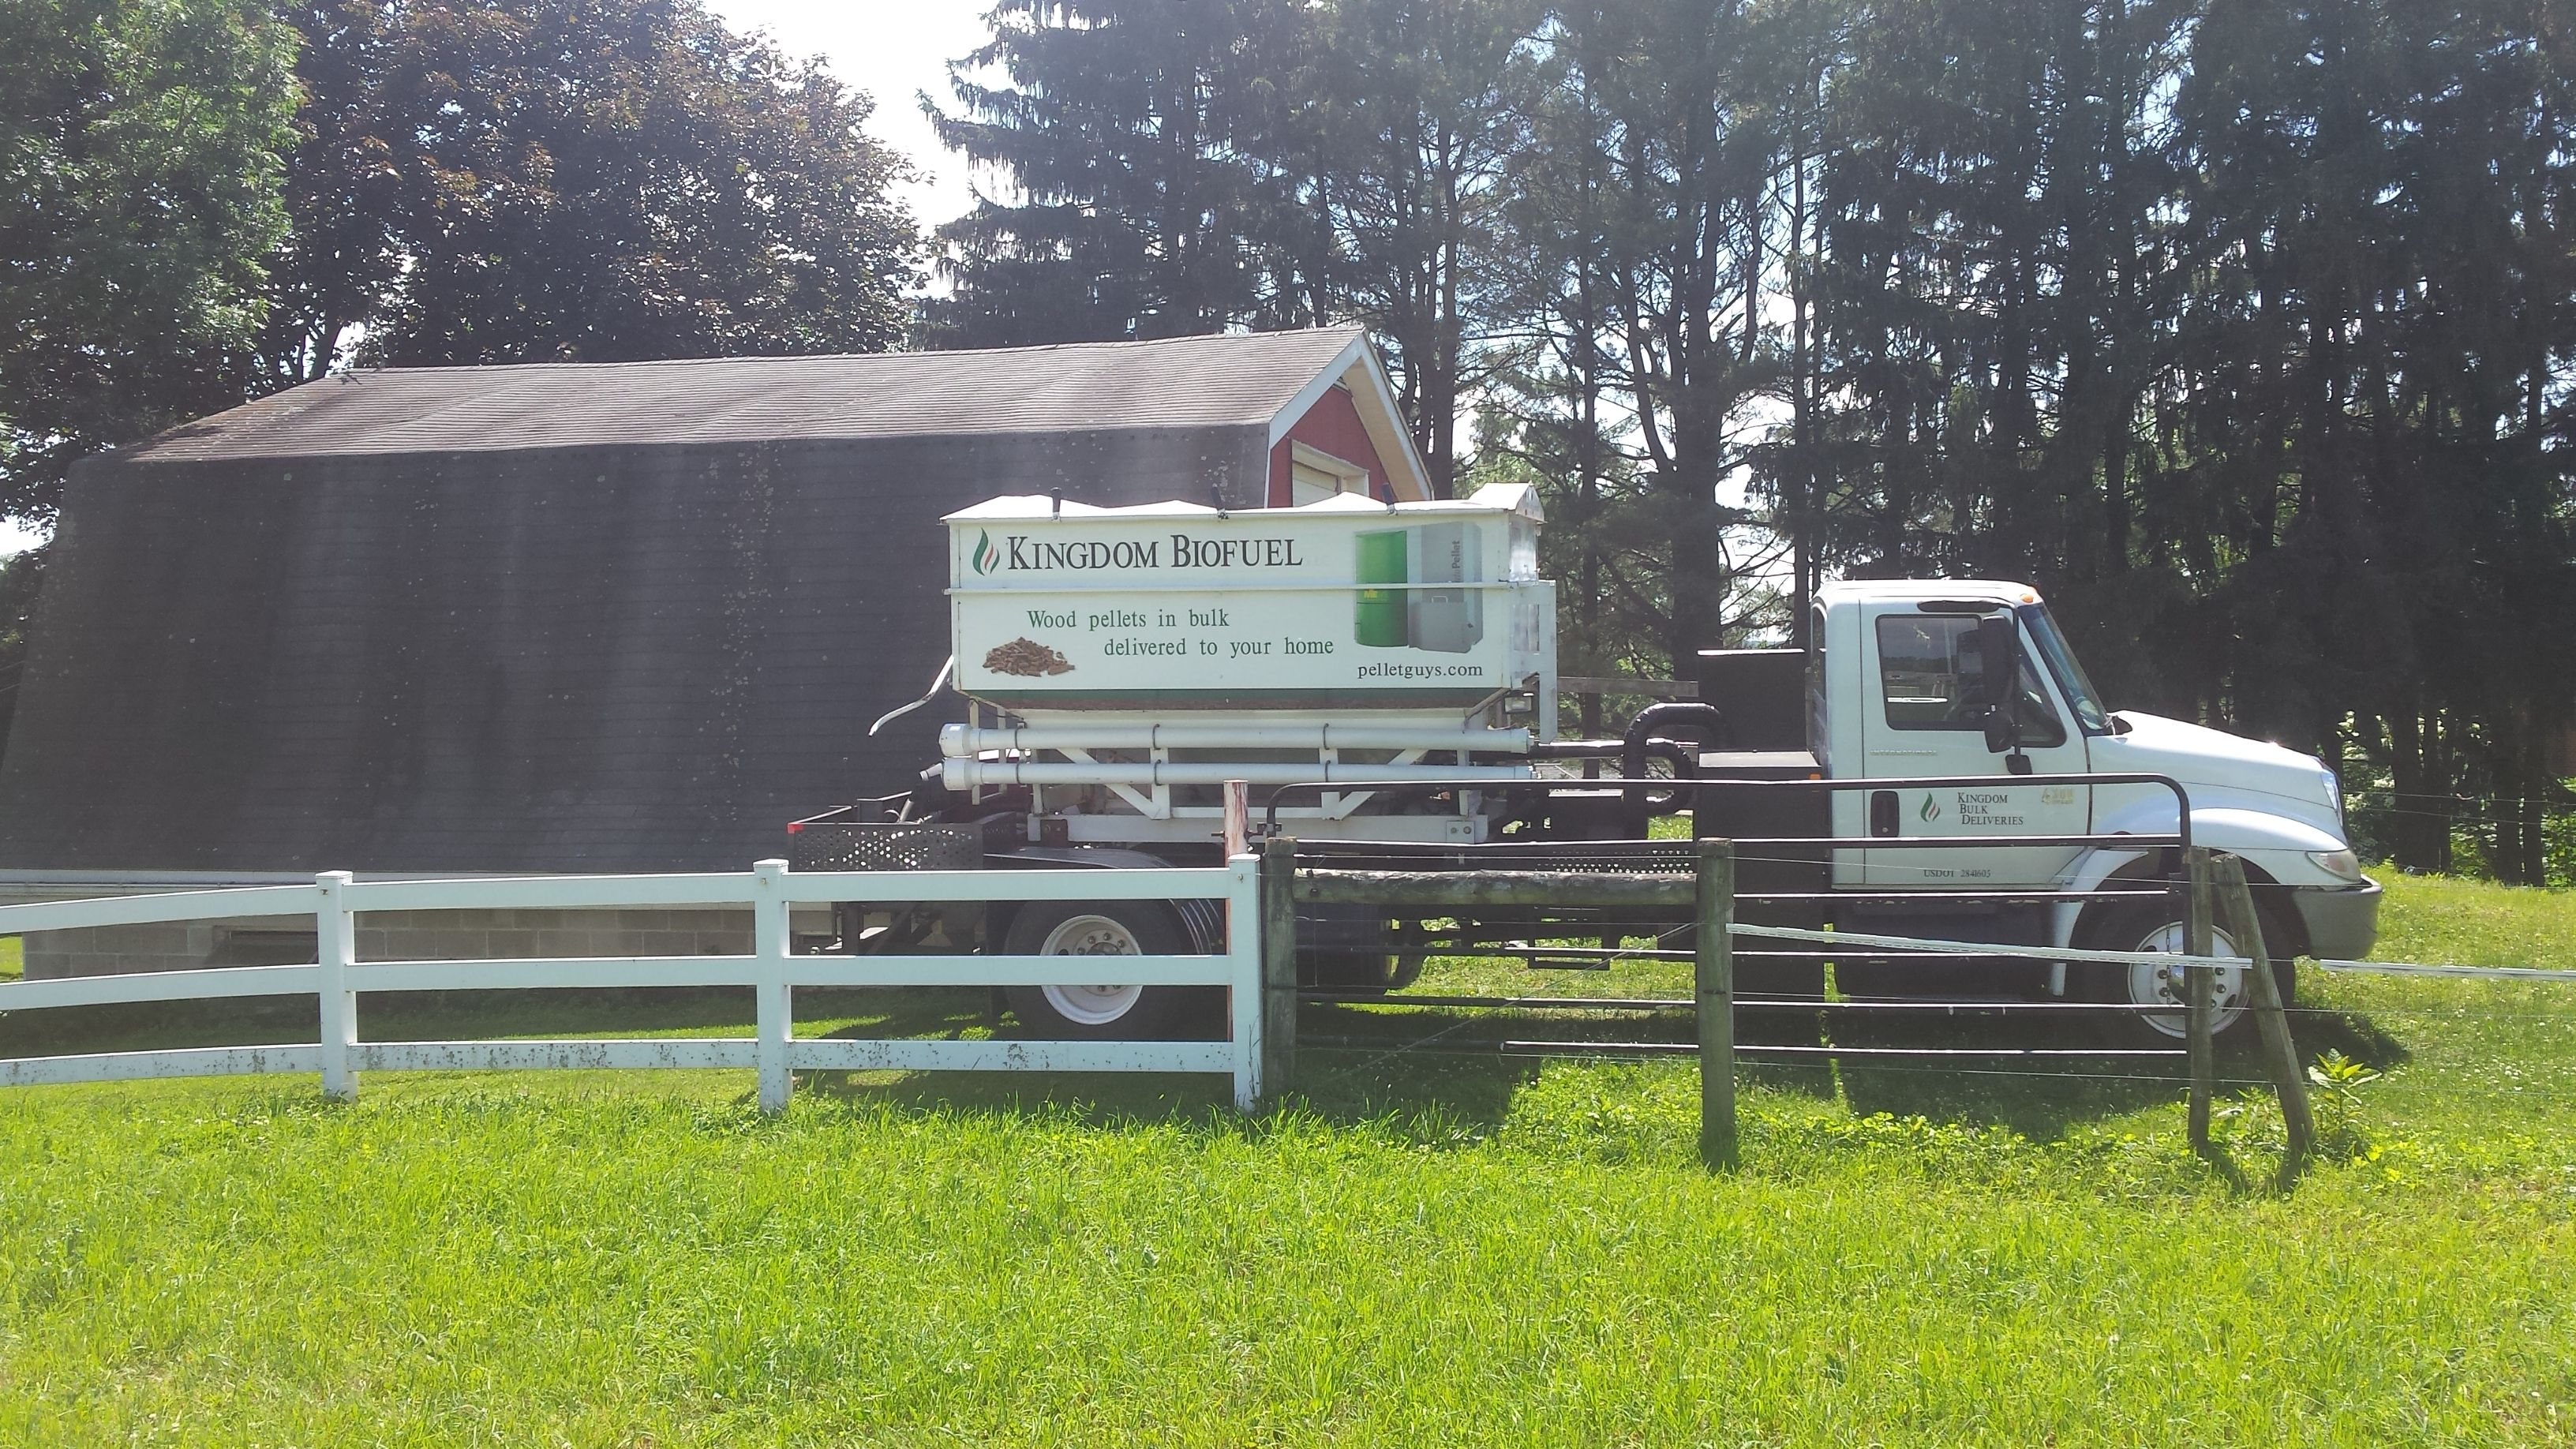 Bedding Pellets for Horses and Pets Horse bedding